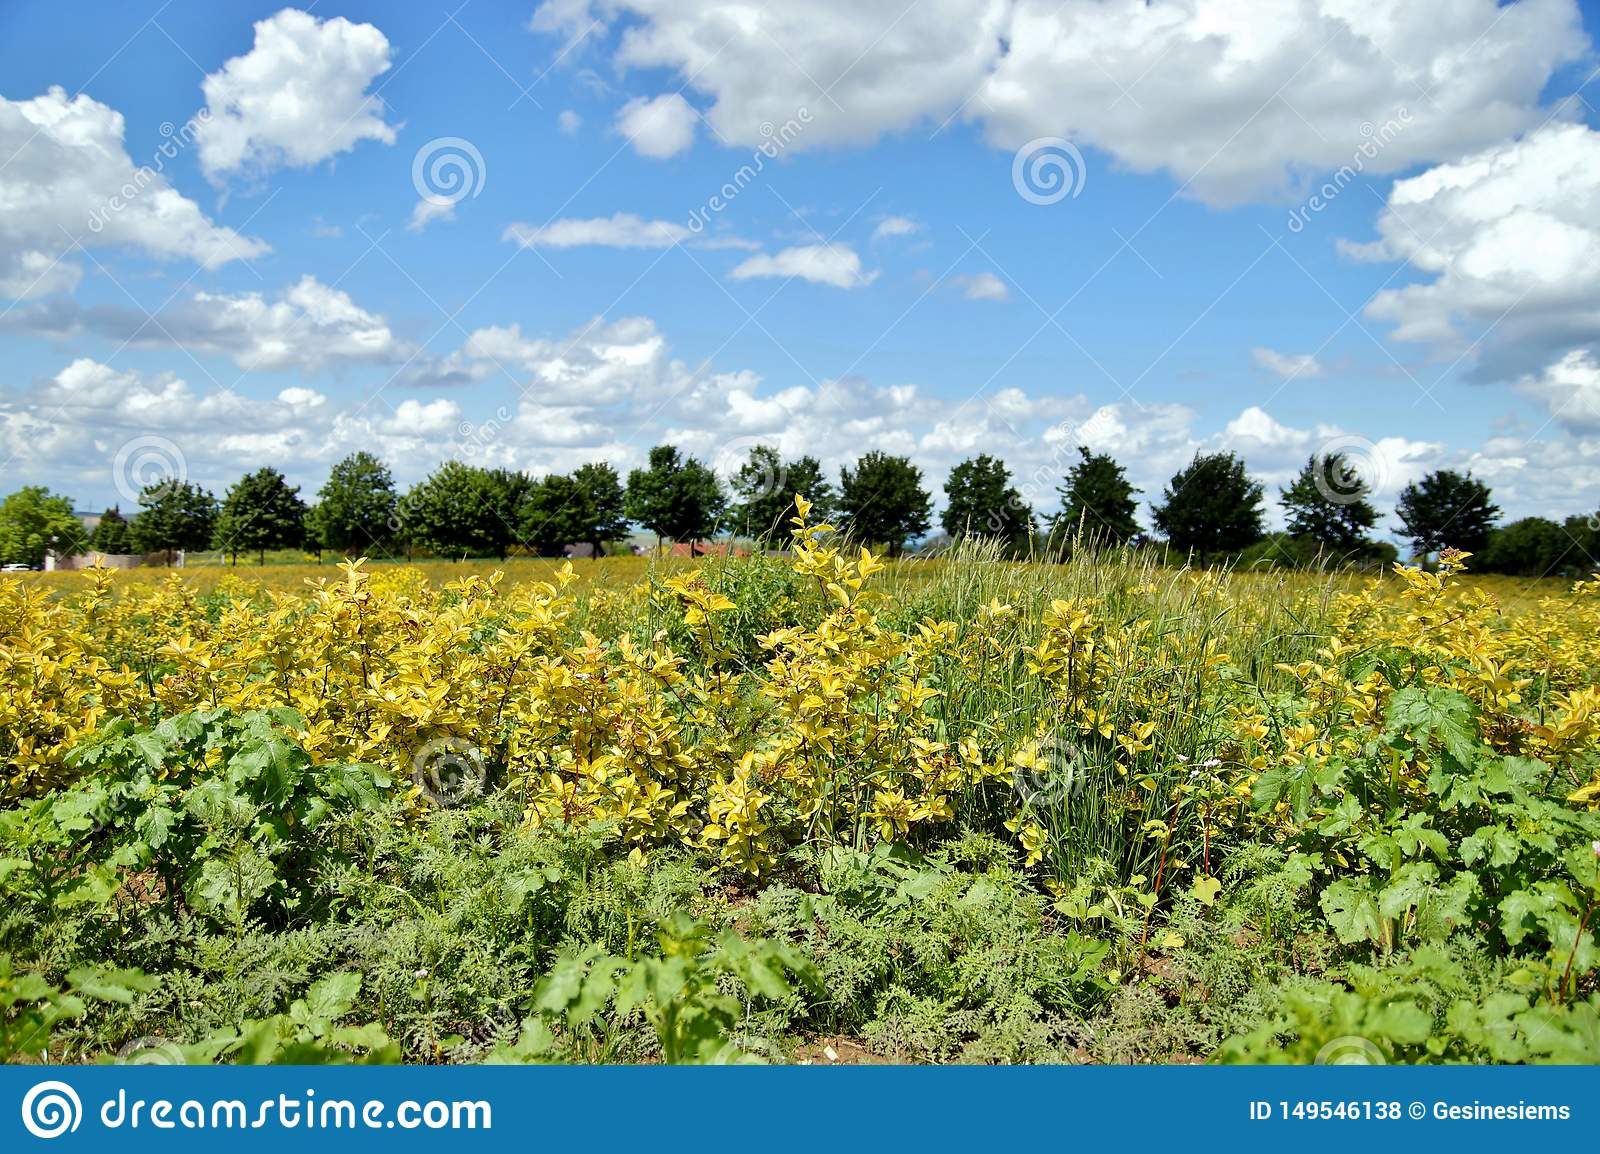 Aronia plantation in golden colour and a line up of trees with blue sky backgrounds with clouds in beautiful rhineland palatinate.